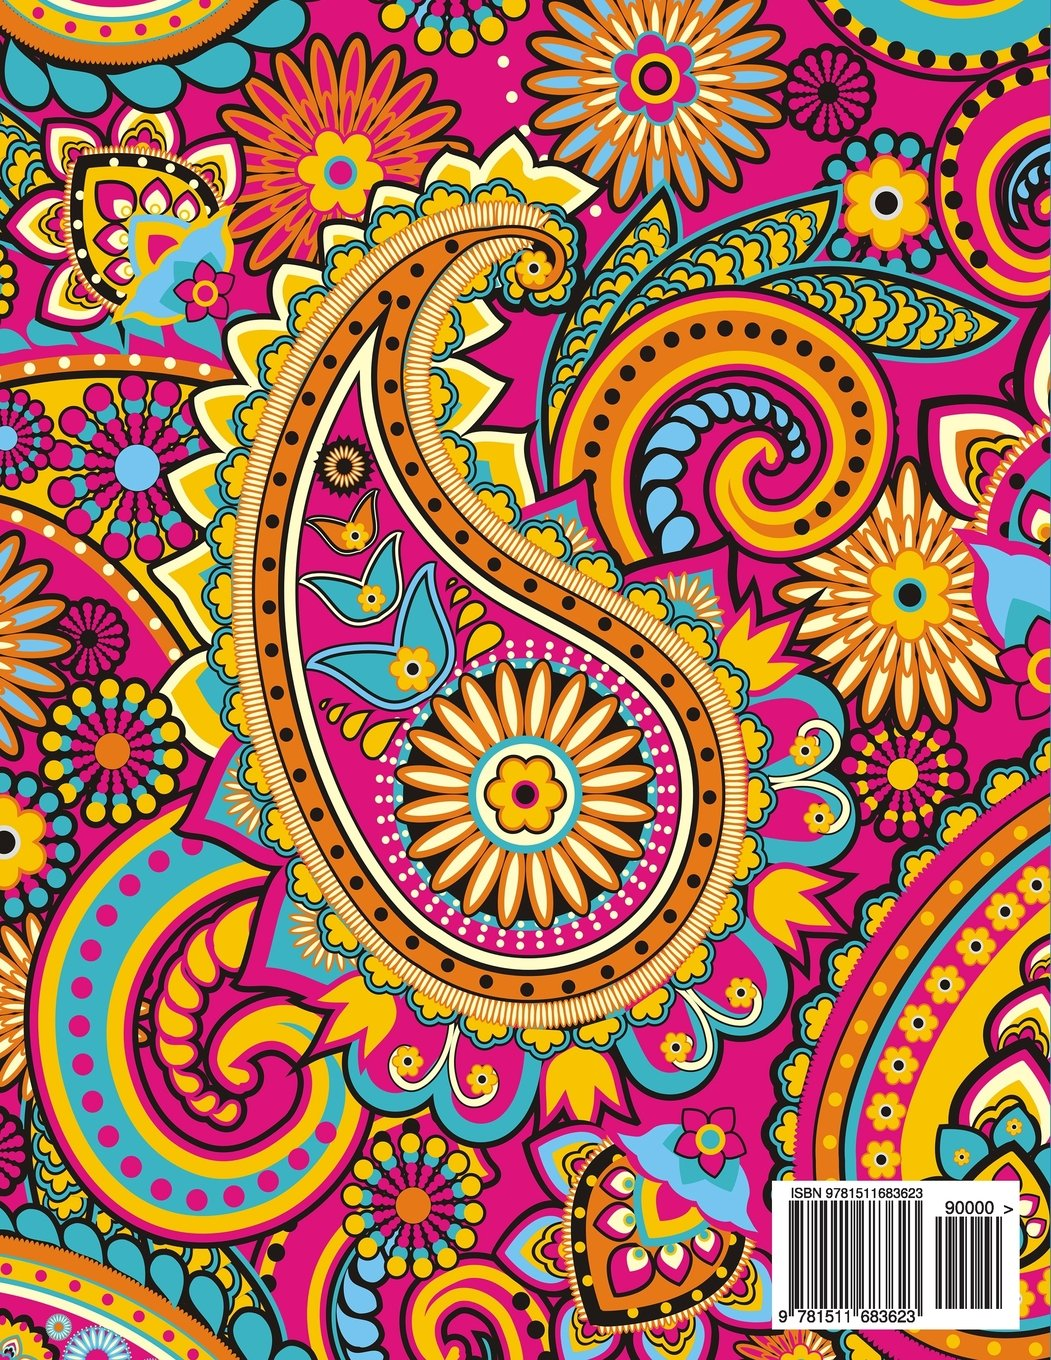 Paisley Patterns An Adult Coloring Book Demimonde Creative 9781511683623 Amazon Com Books